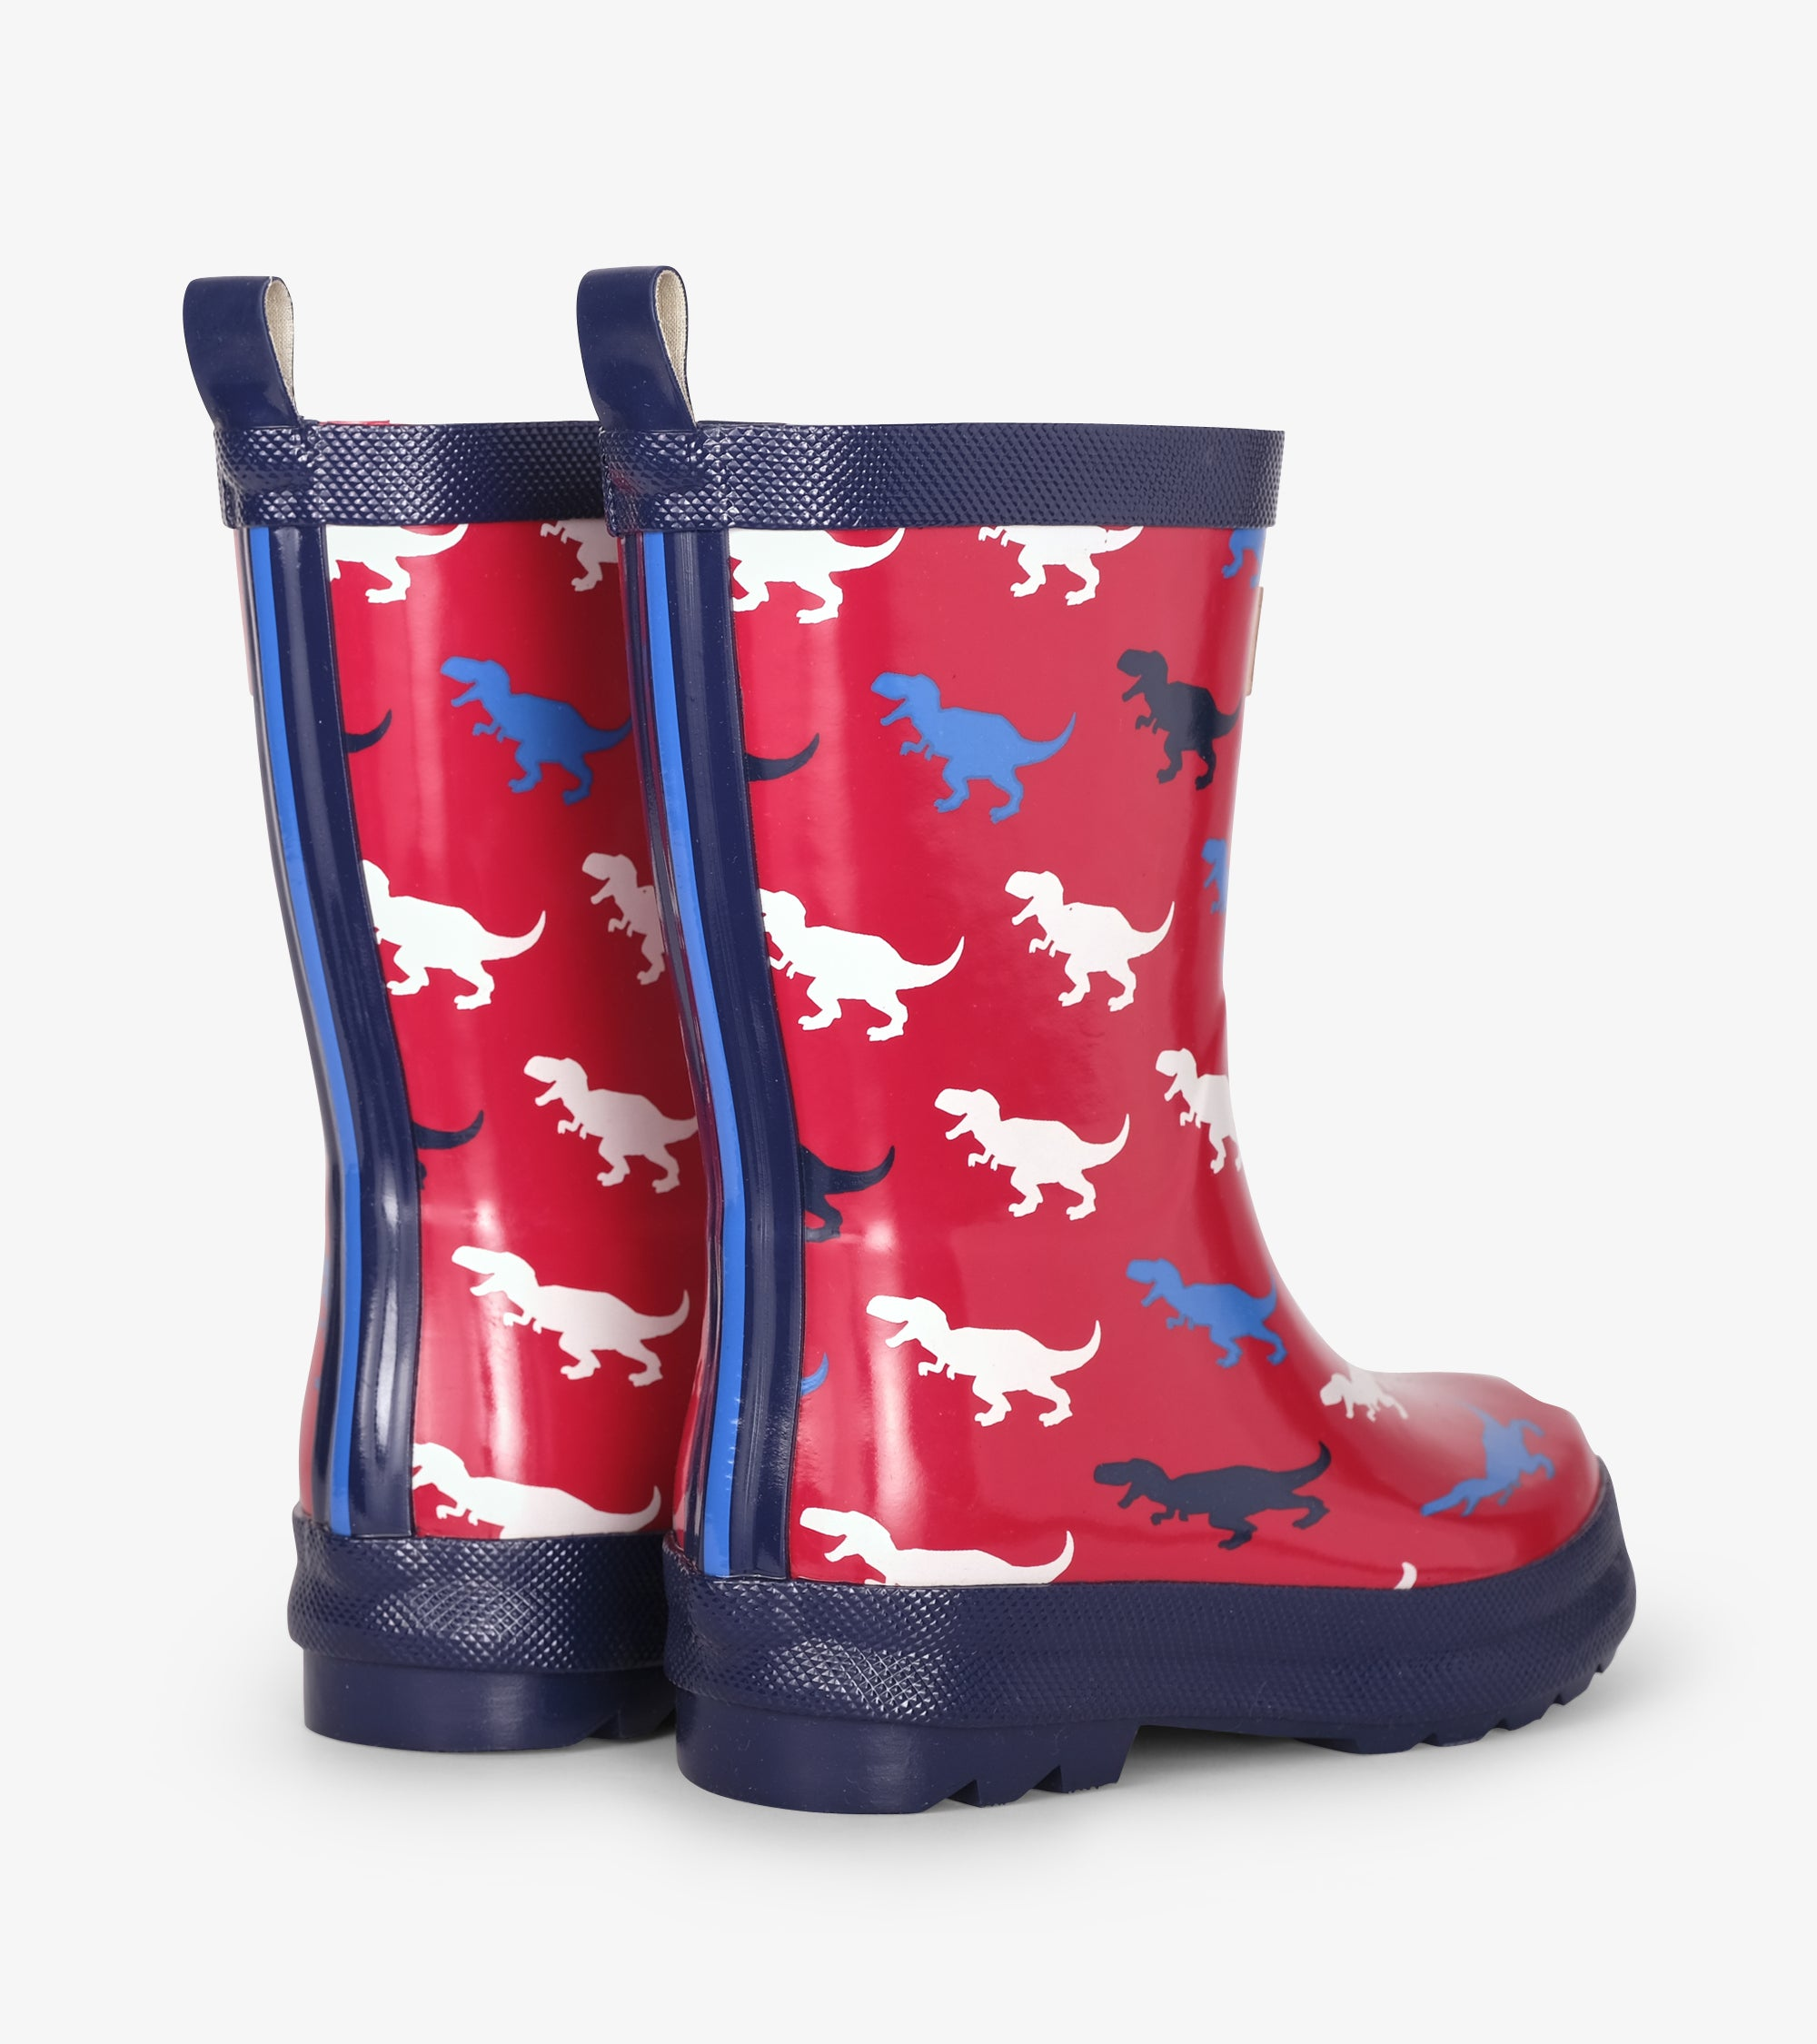 Hatley T-Rex Silhouettes Shiny Rain Boots